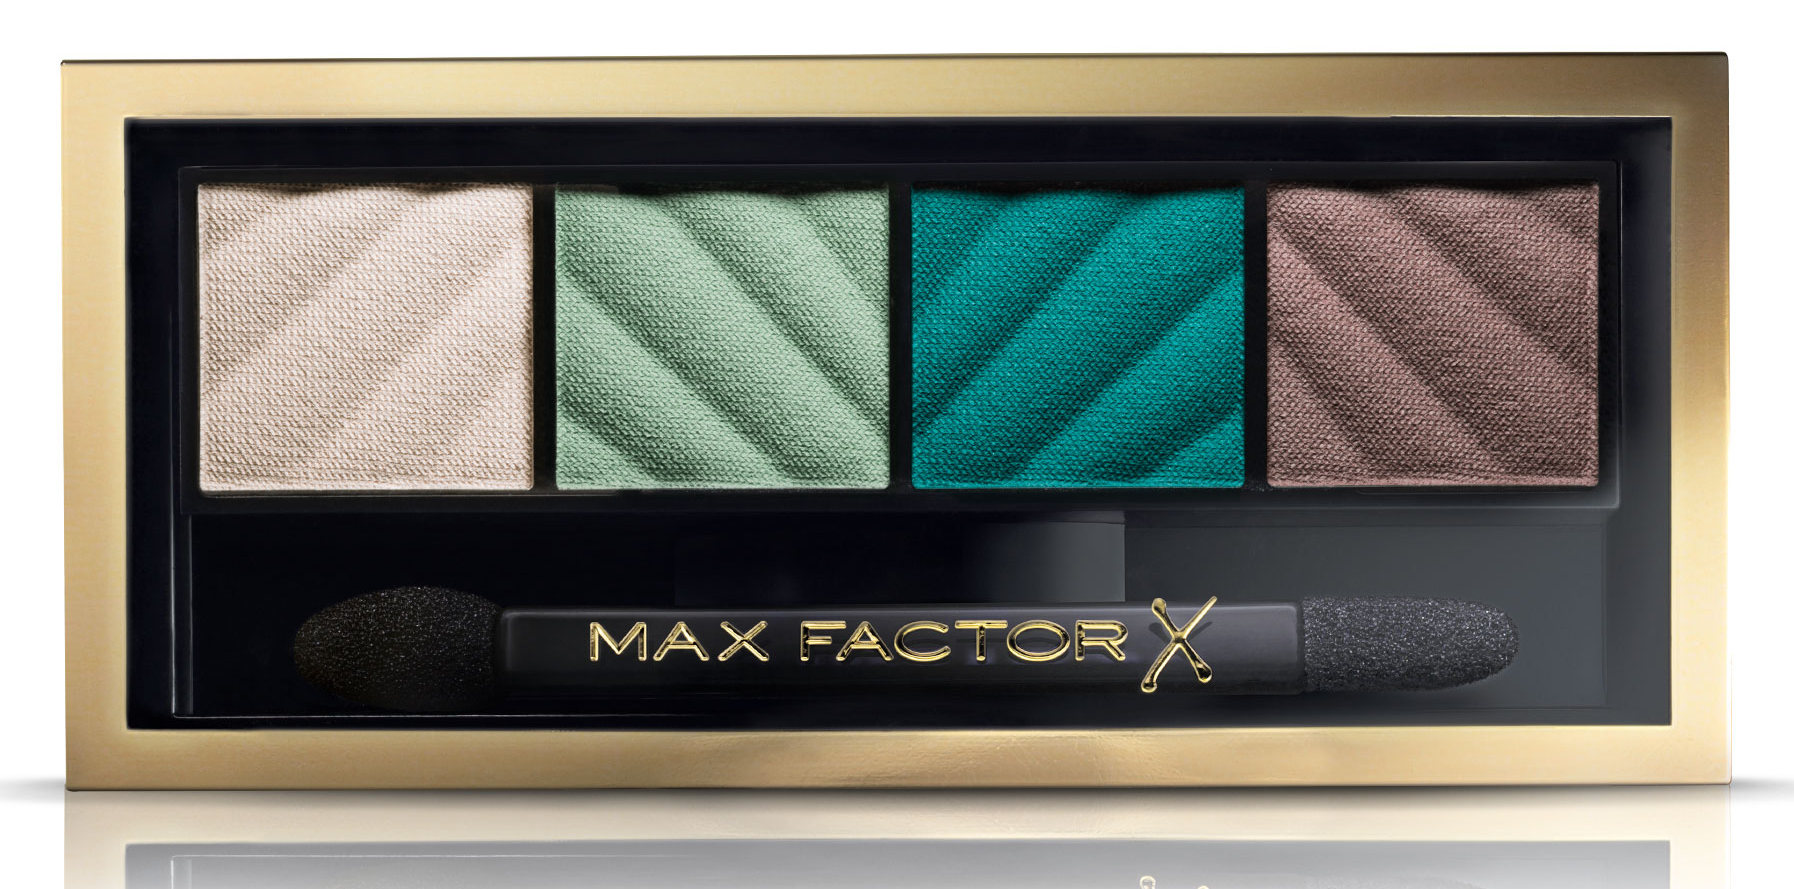 MAX FACTOR Тени для век и пудра для бровей 40 / Smokey Eye Matte Drama Kit hypnotic jade